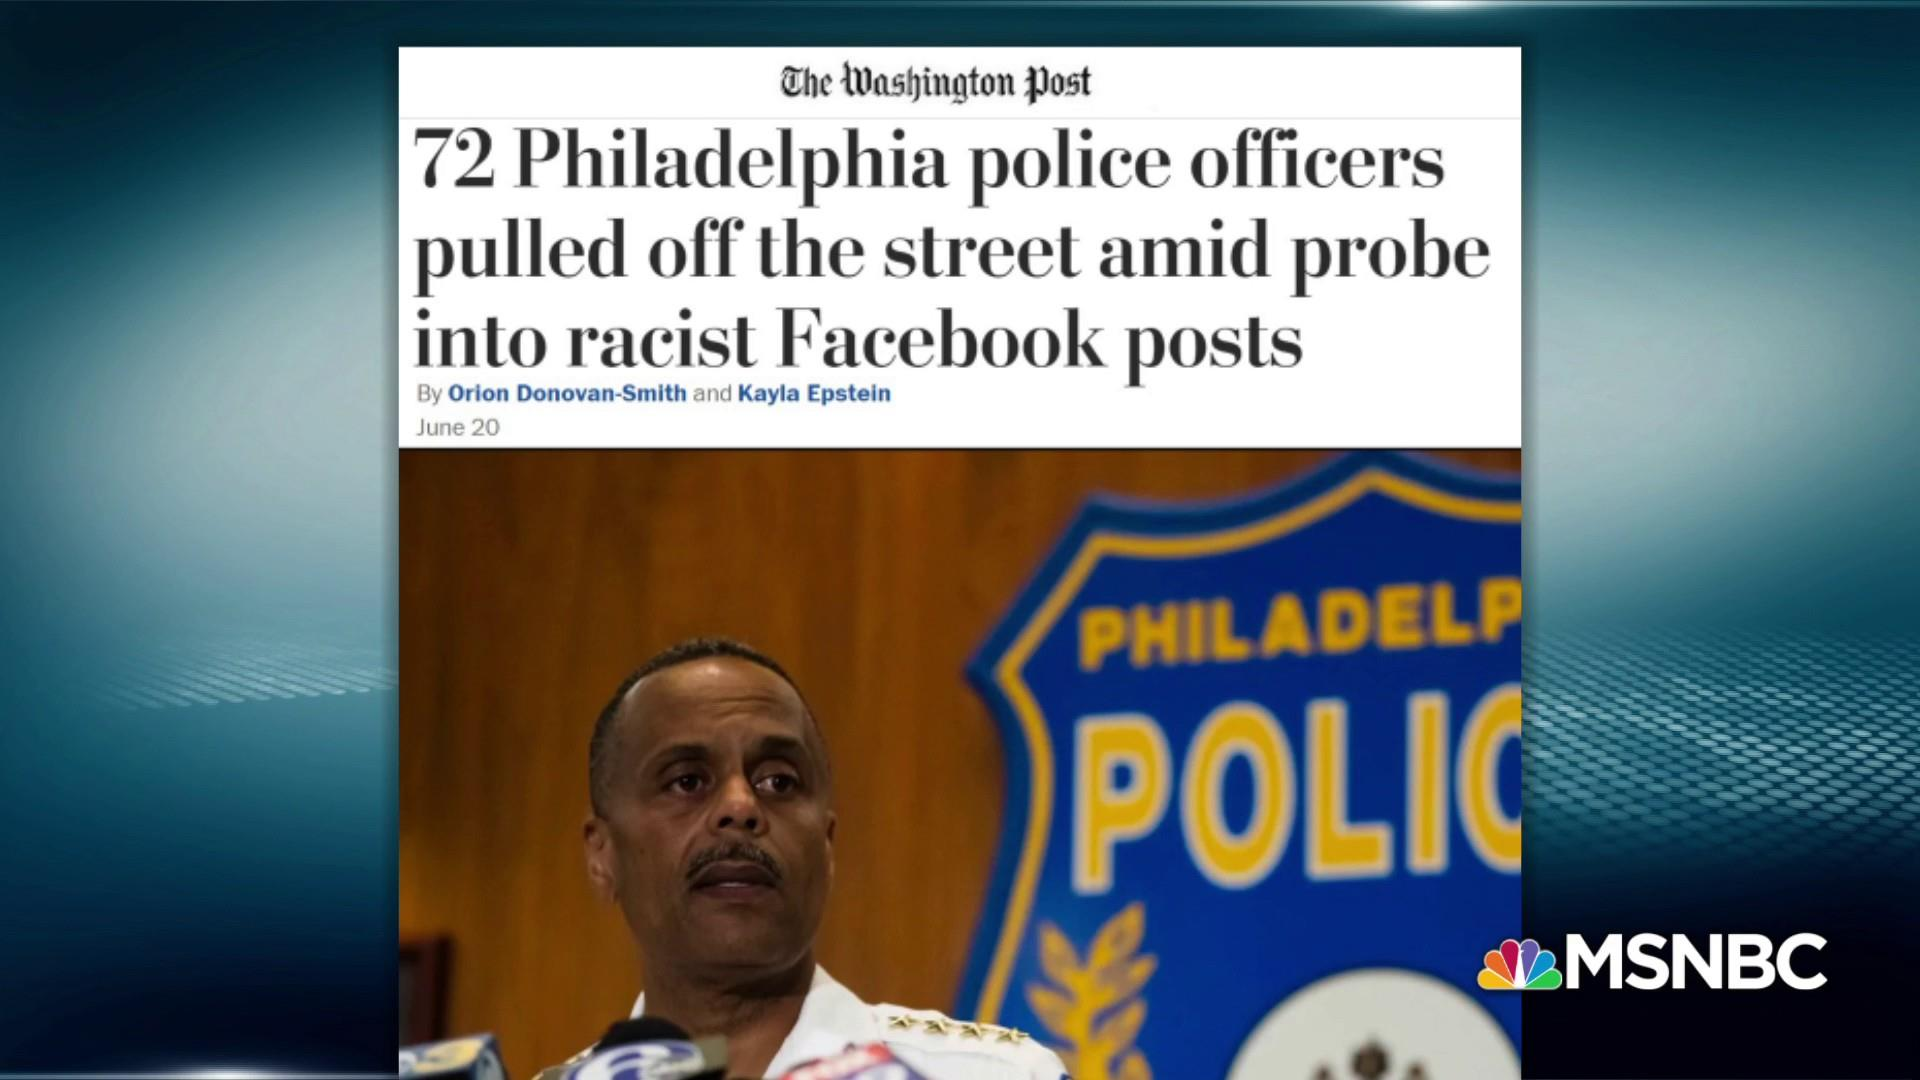 Watchdogs uncover officers' racist Facebook posts